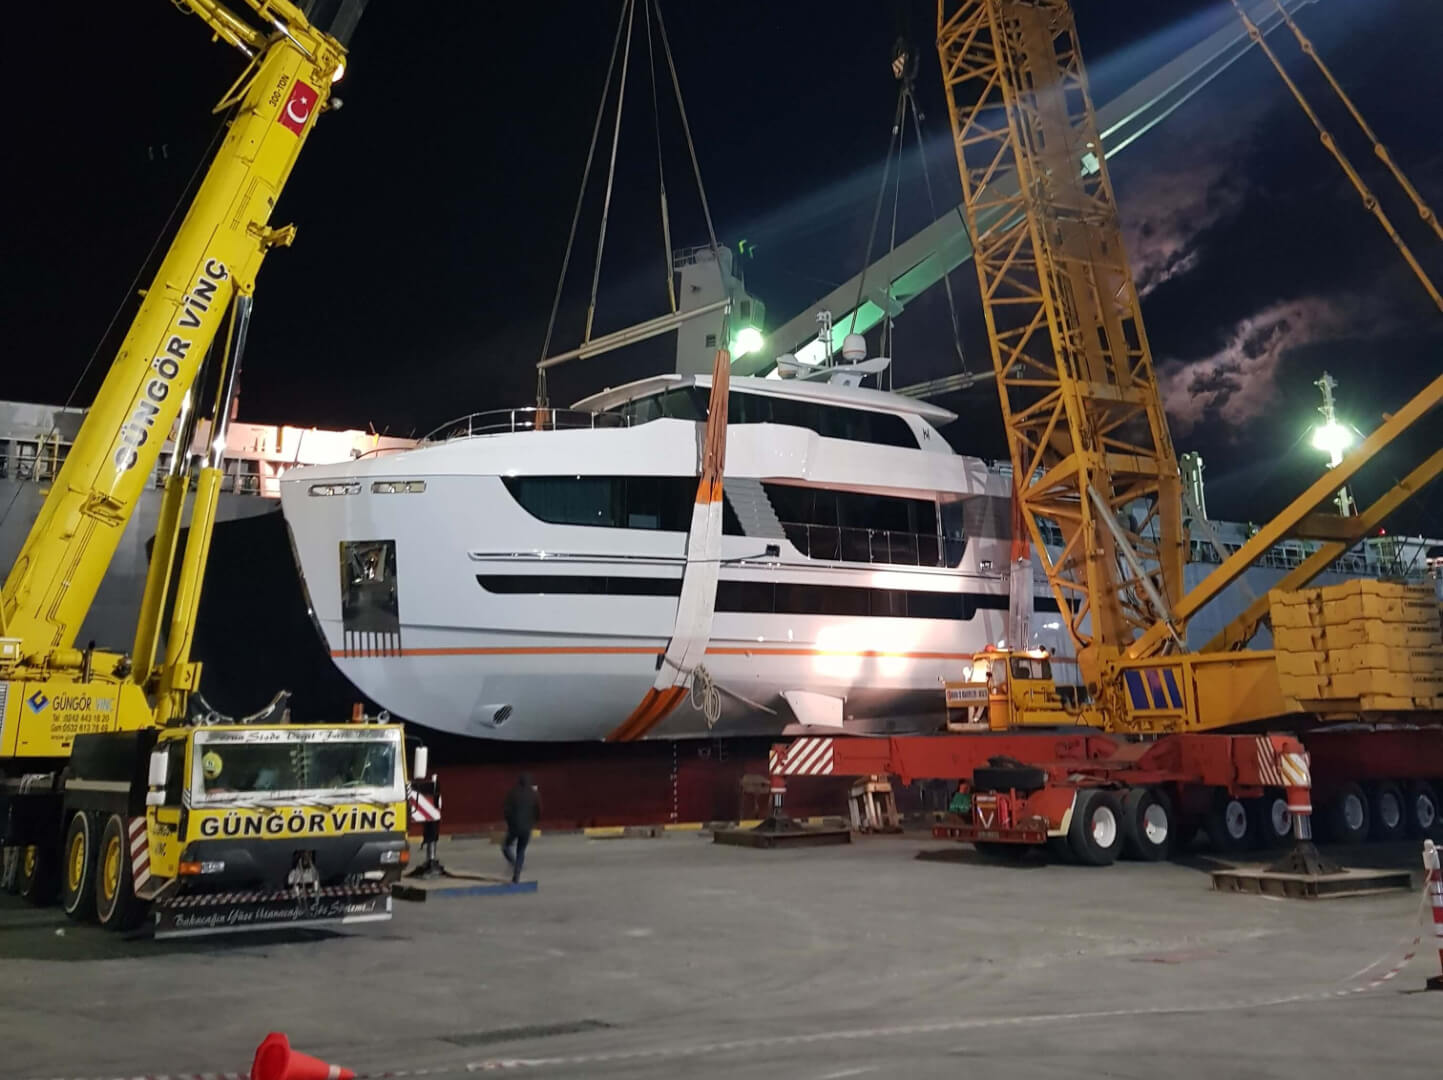 115-ton-yacht-in-antalya-free-zone | Blog